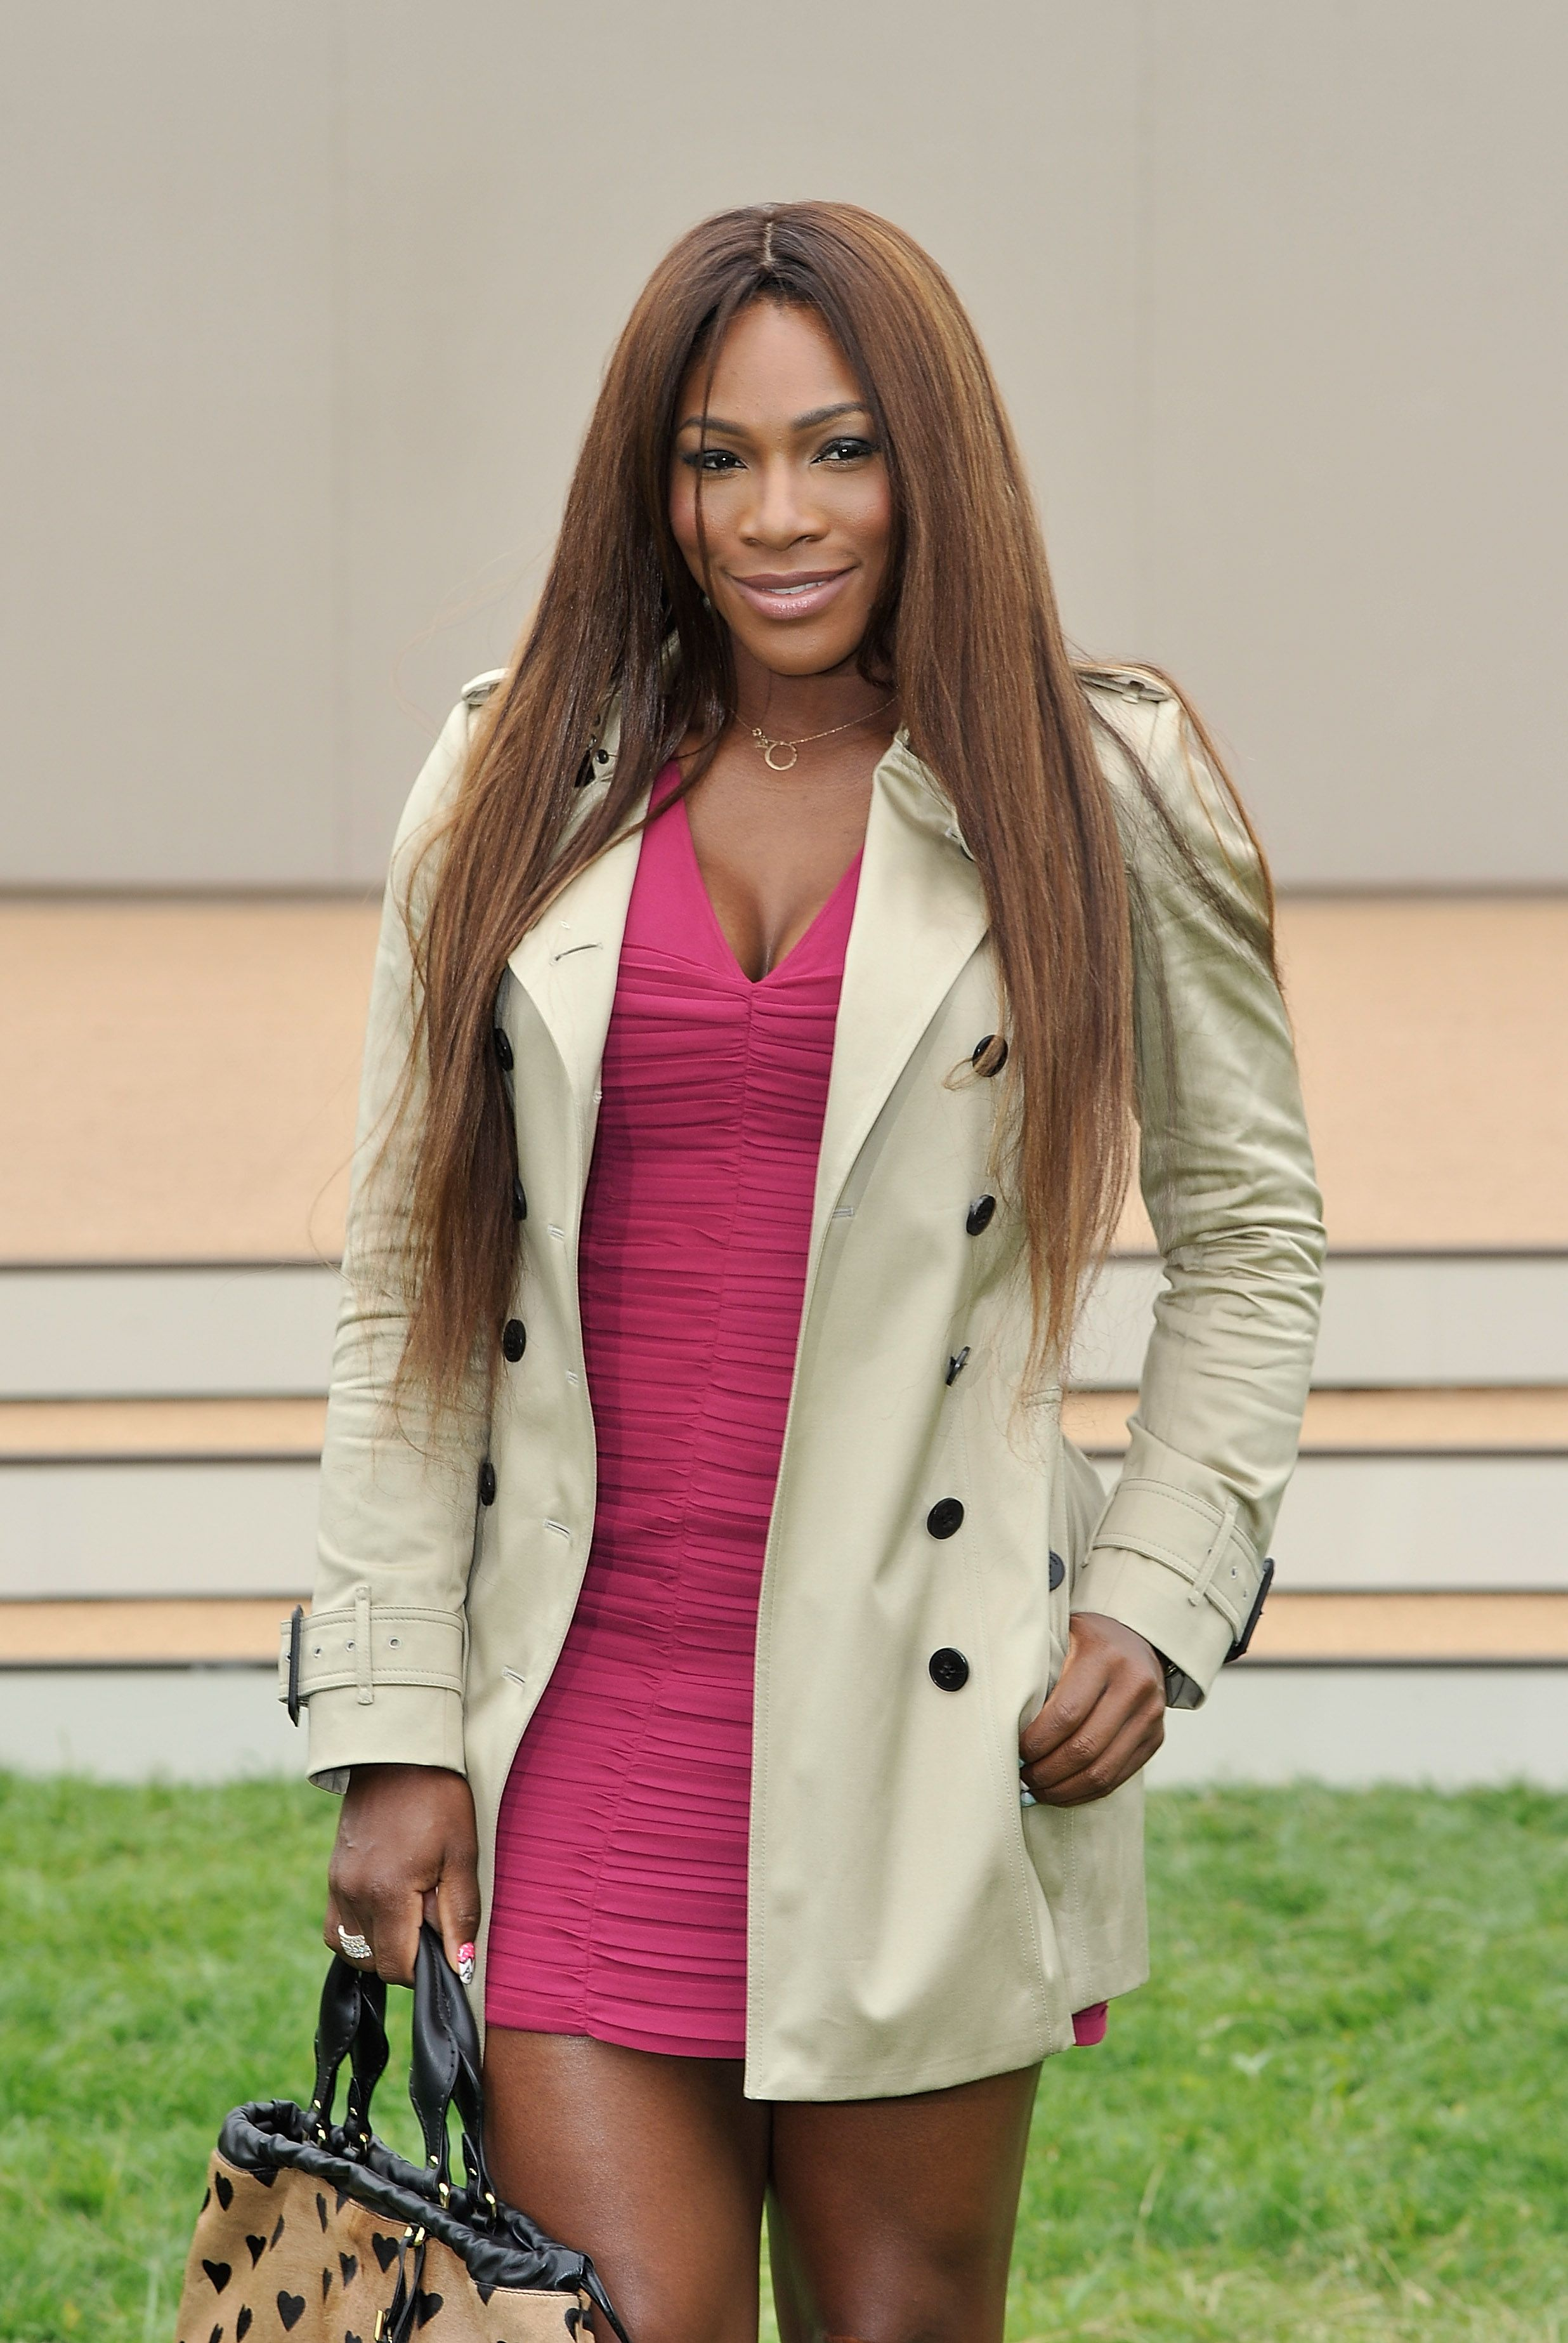 Serena Williams at the Burberry Menswear Spring/Summer 2014 at Kensington Gardens on June 18, 2013 in London, England.   Source: Getty Images